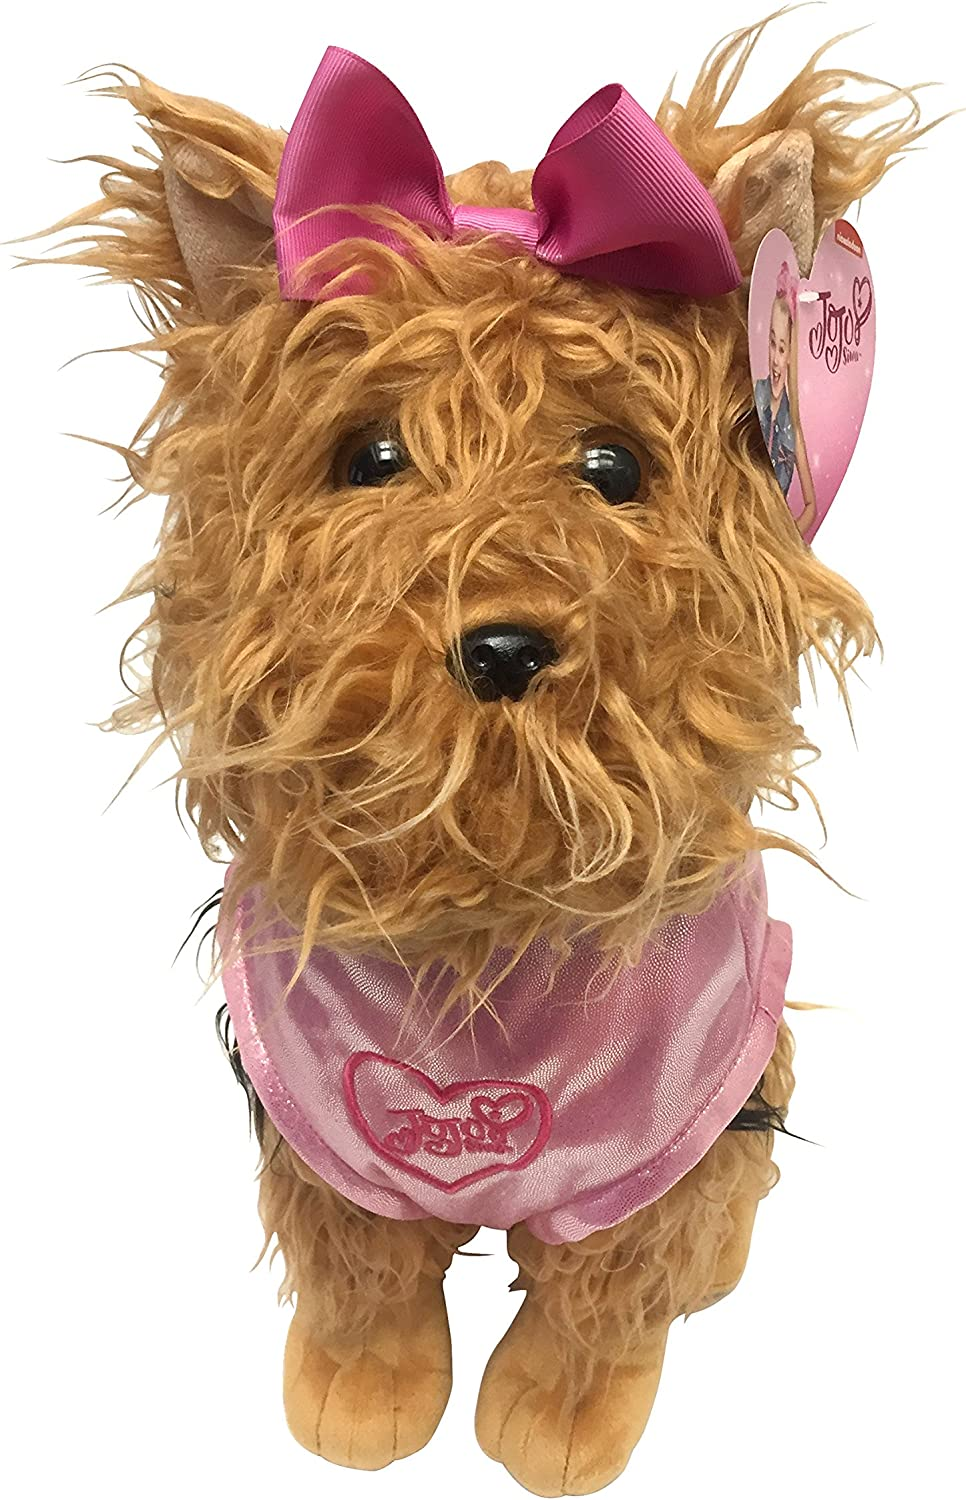 Amazon Com Nickelodeon Jojo Siwa Bowbow The Dog Plush 17 Pillow